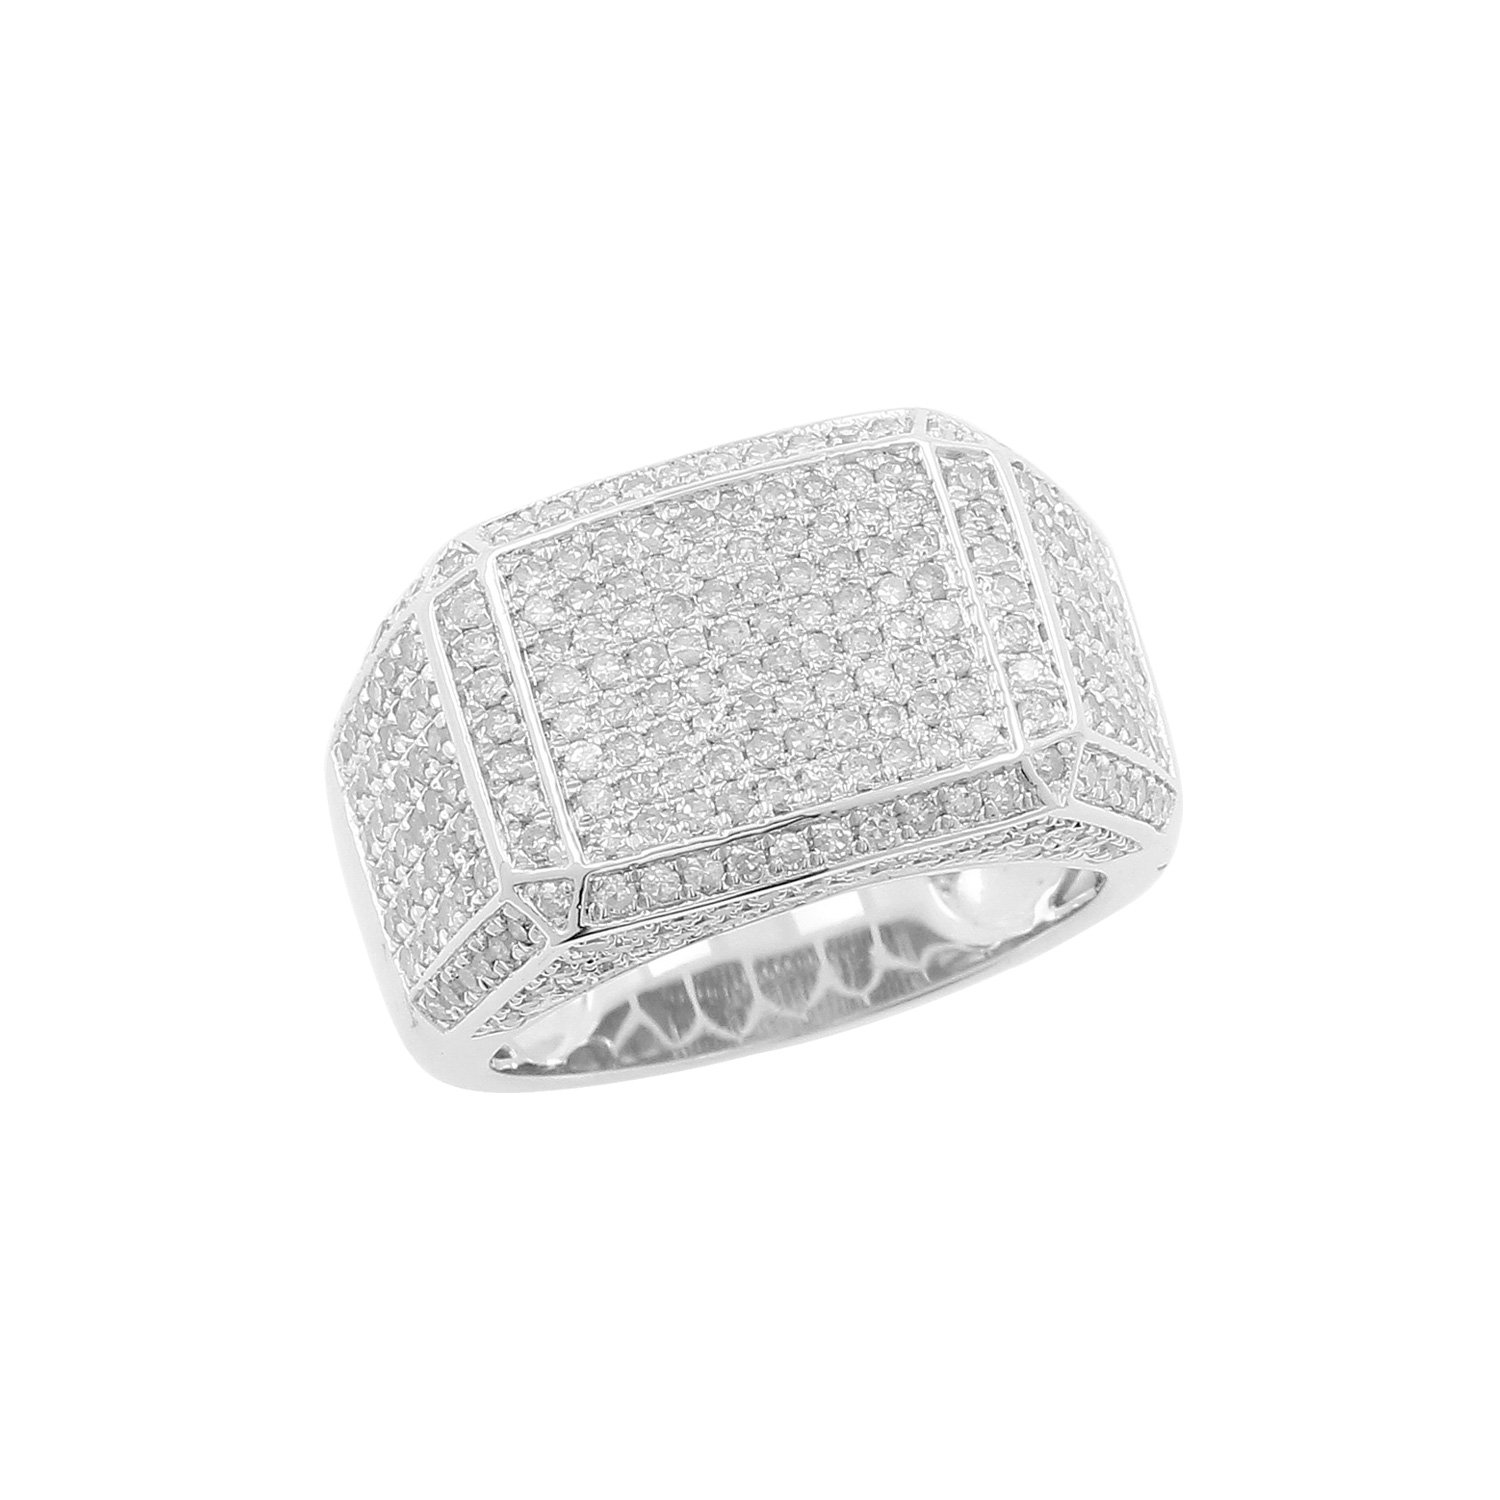 2.40cttw Diamond Men's Ring in 925 Silver, Size 10 (I-J, I2-I3 Clarity)